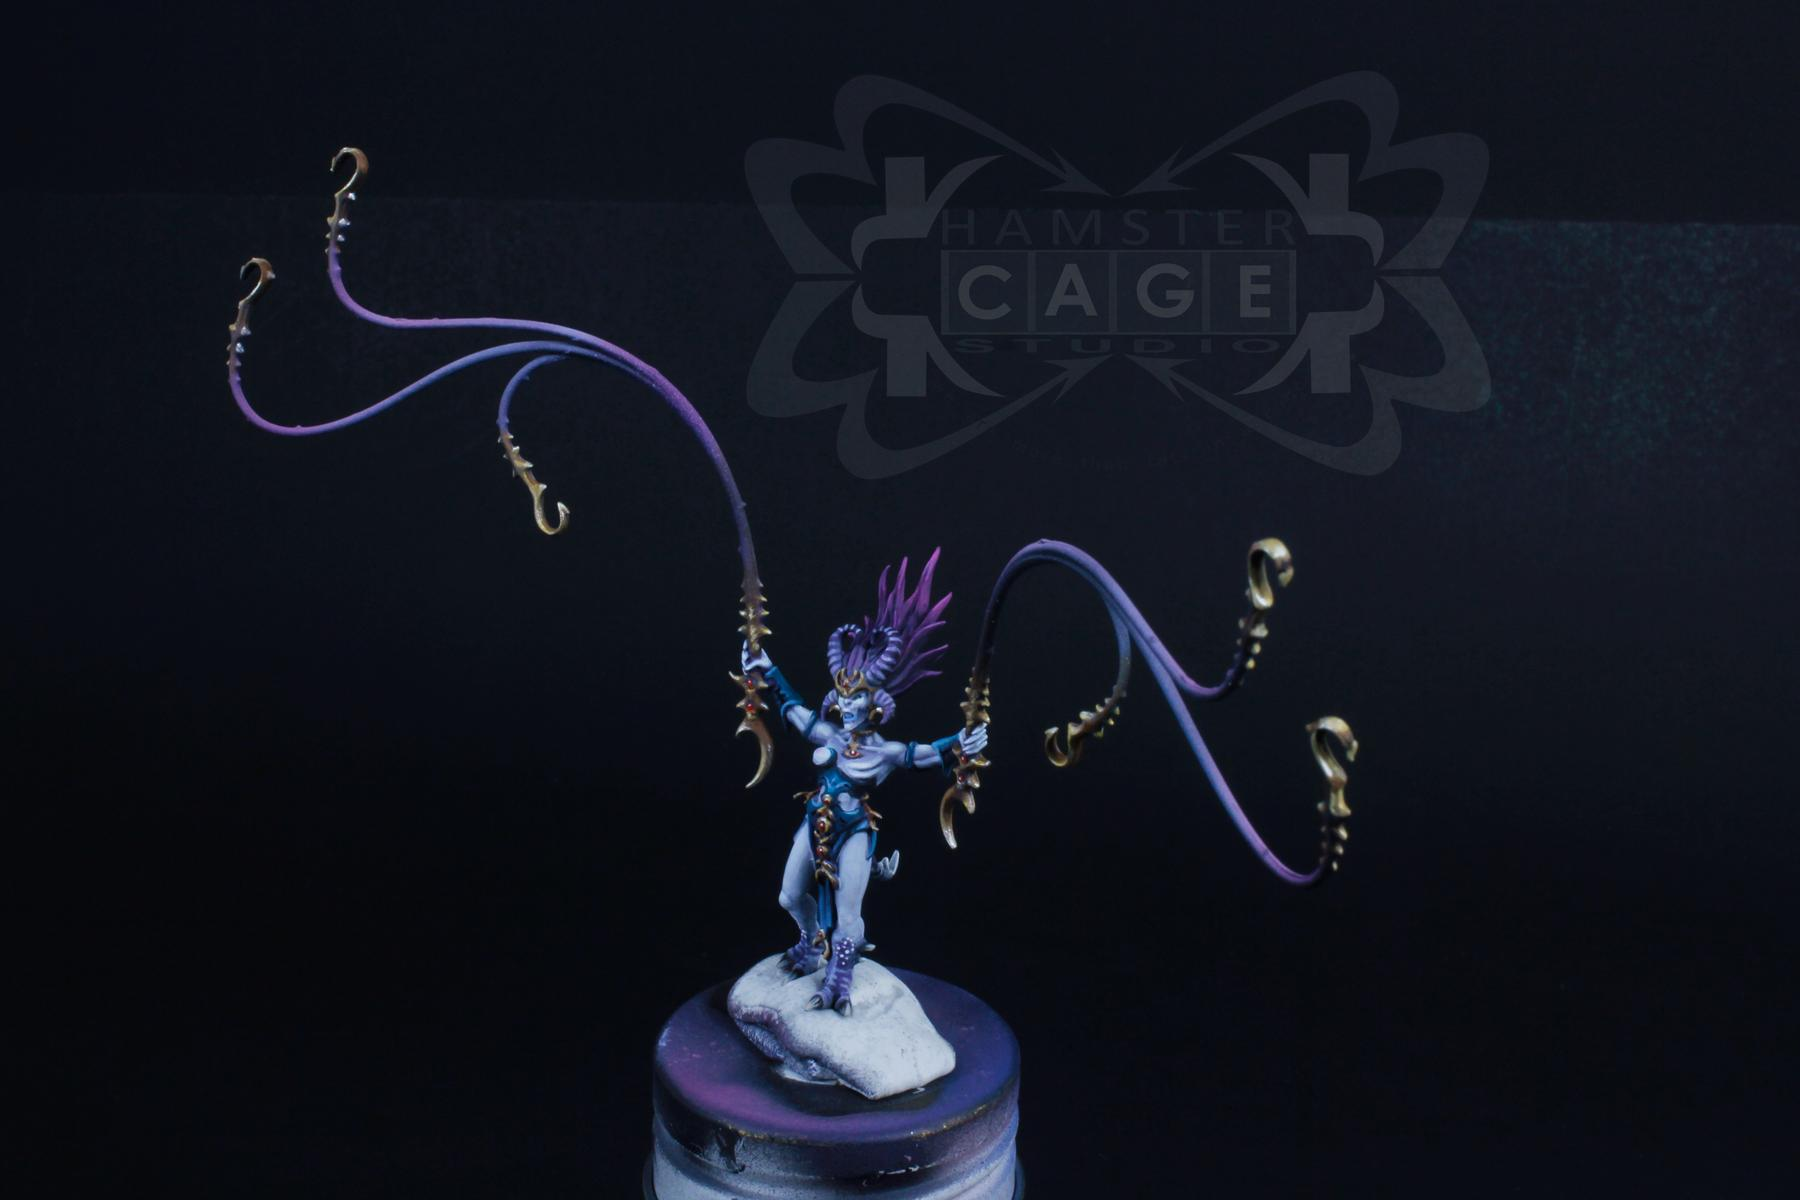 Chariot, Daemons, Demon Engine, Exalted, Exalted Chariot, Slaanesh, Slaanesh Chariot